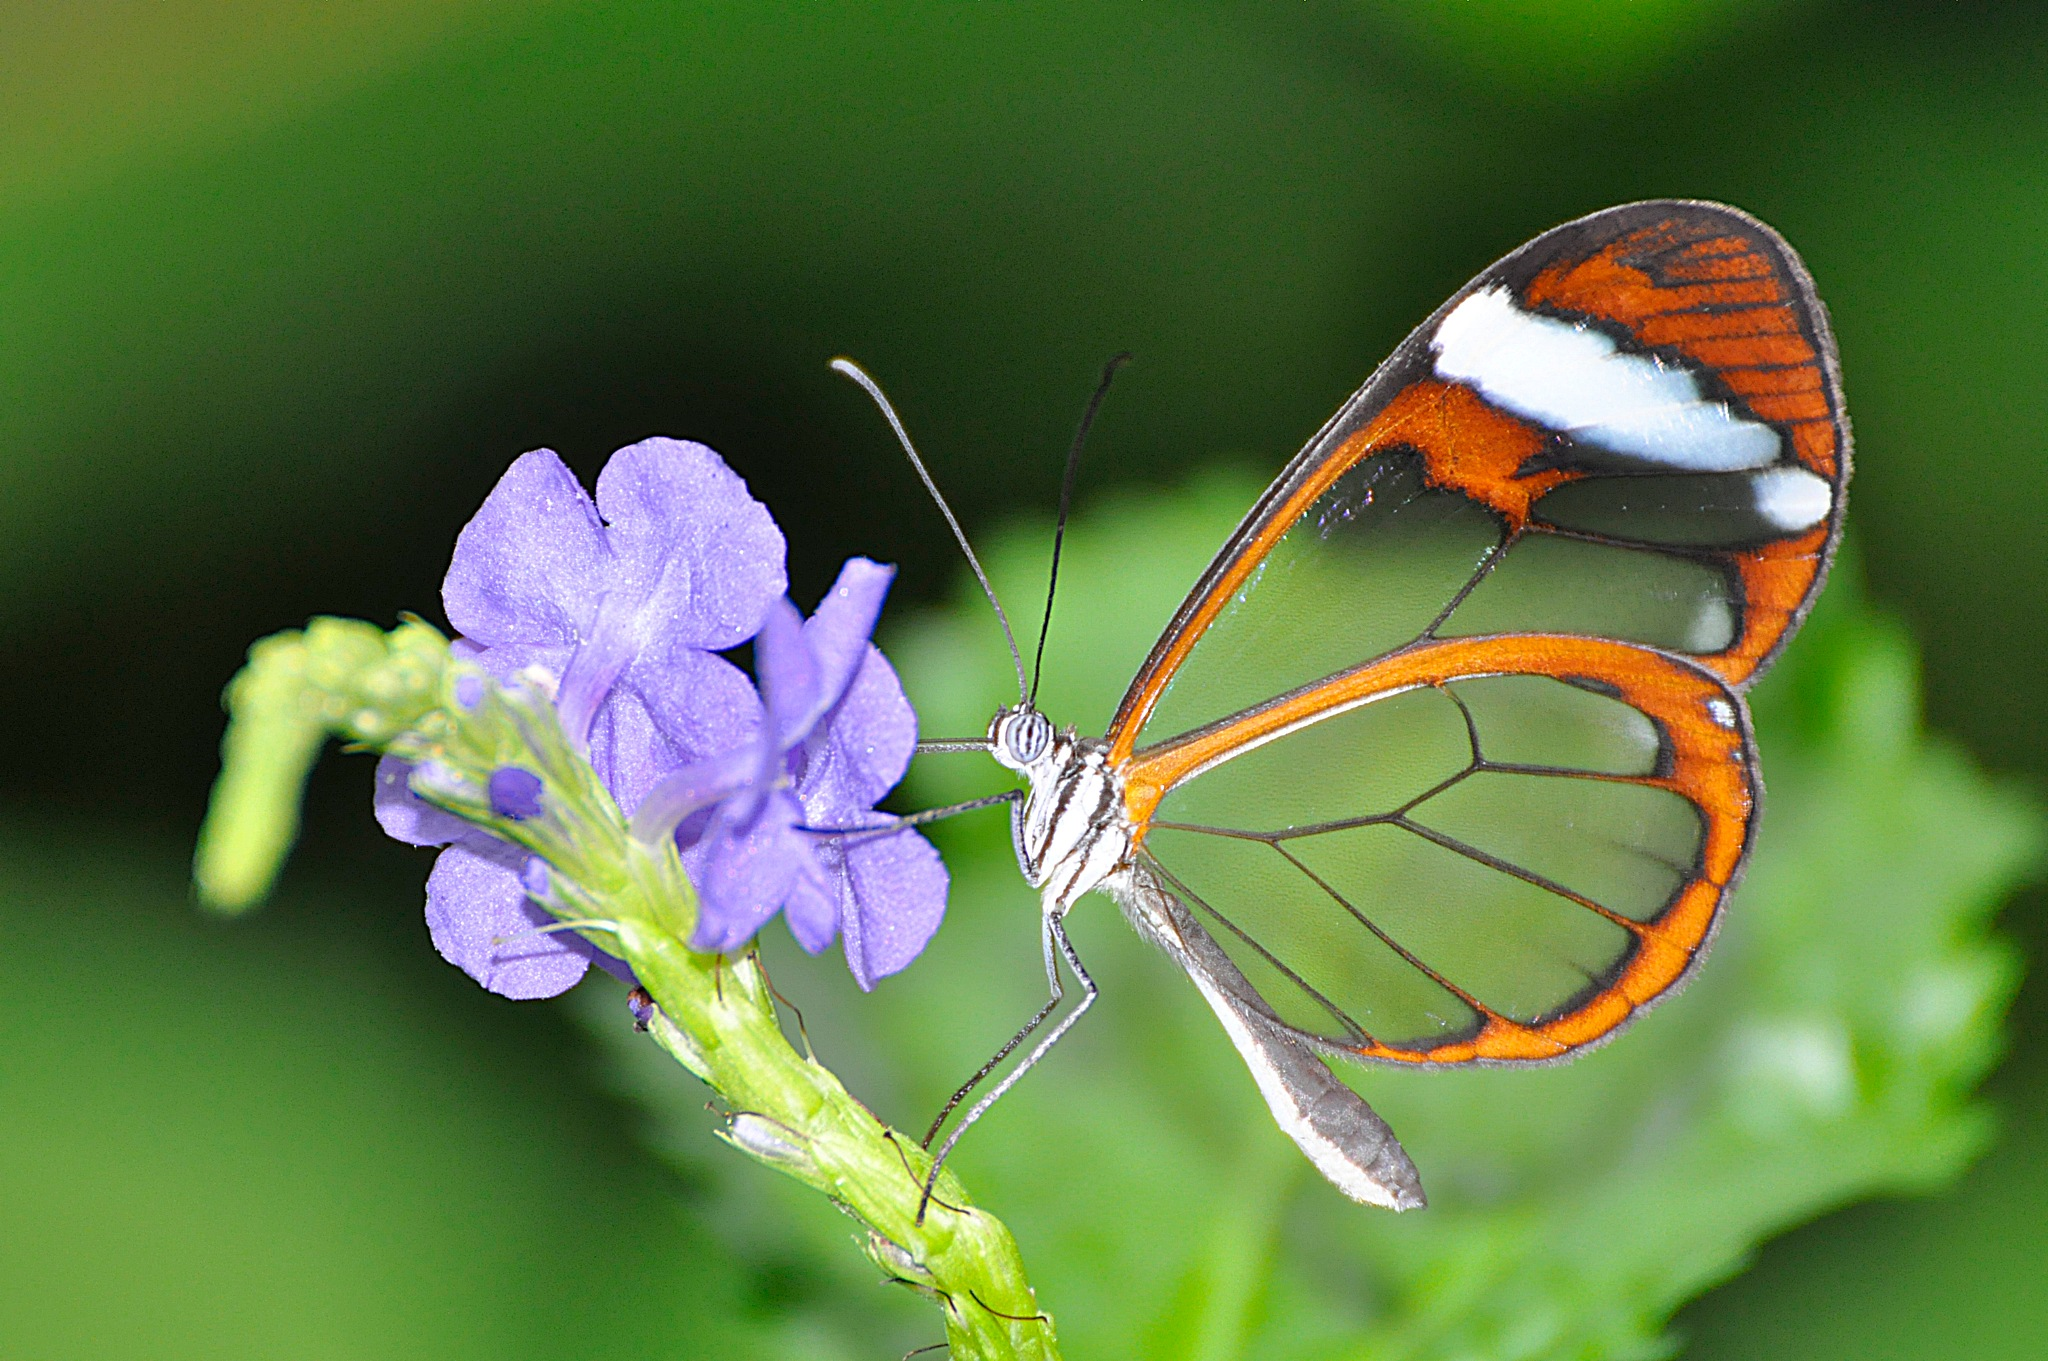 Butterfly with windows by Louis Frielink